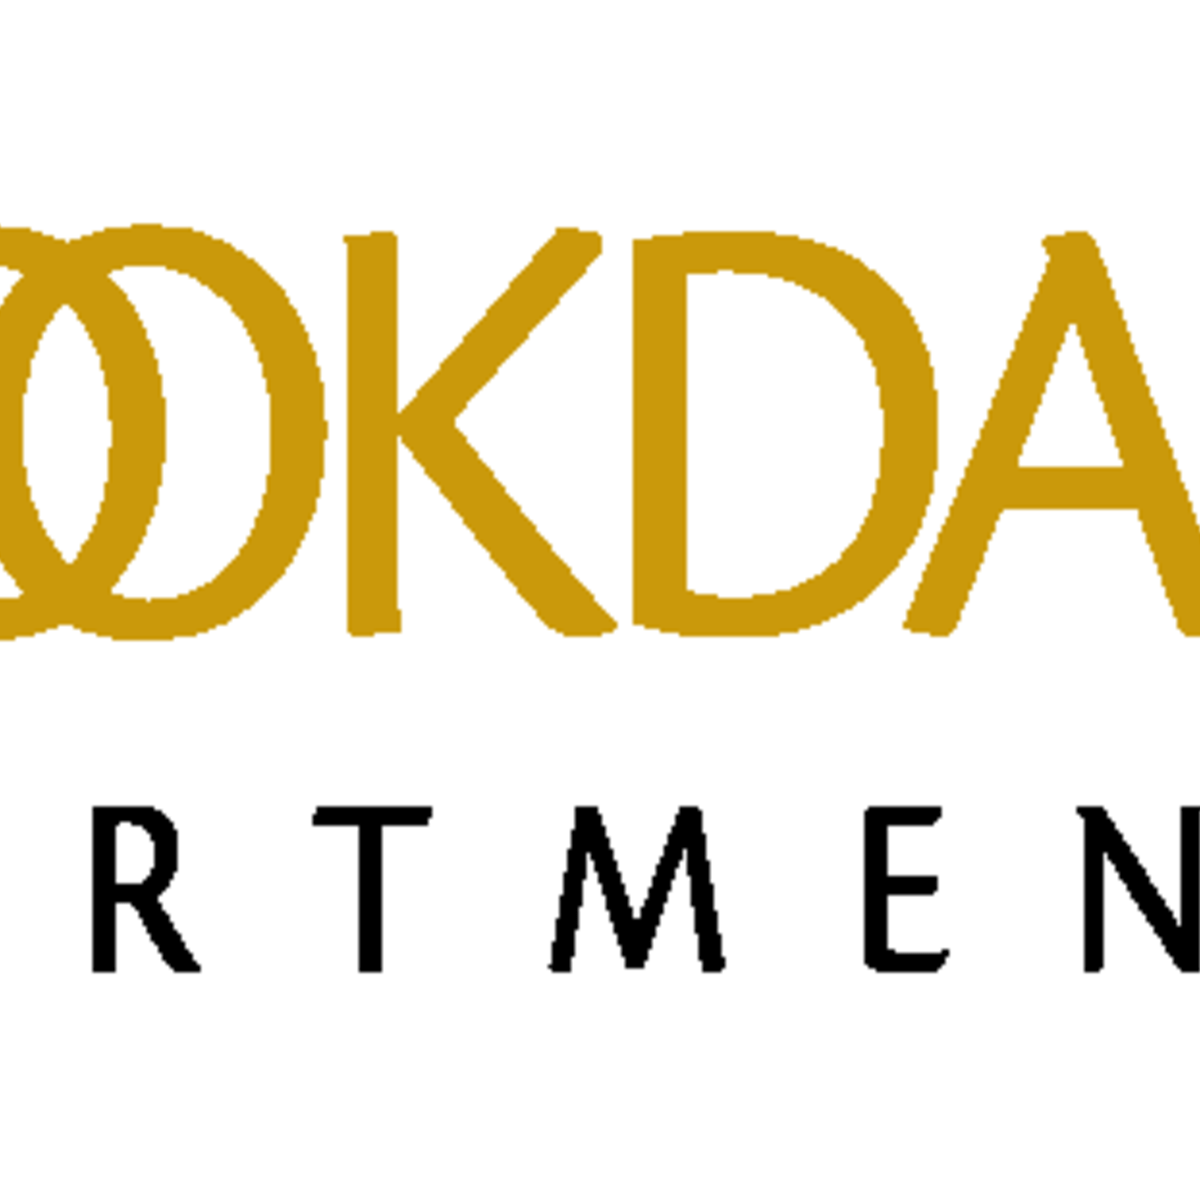 Brookdale Apartments: Apartment Rental Amenities In South Lyon, MI